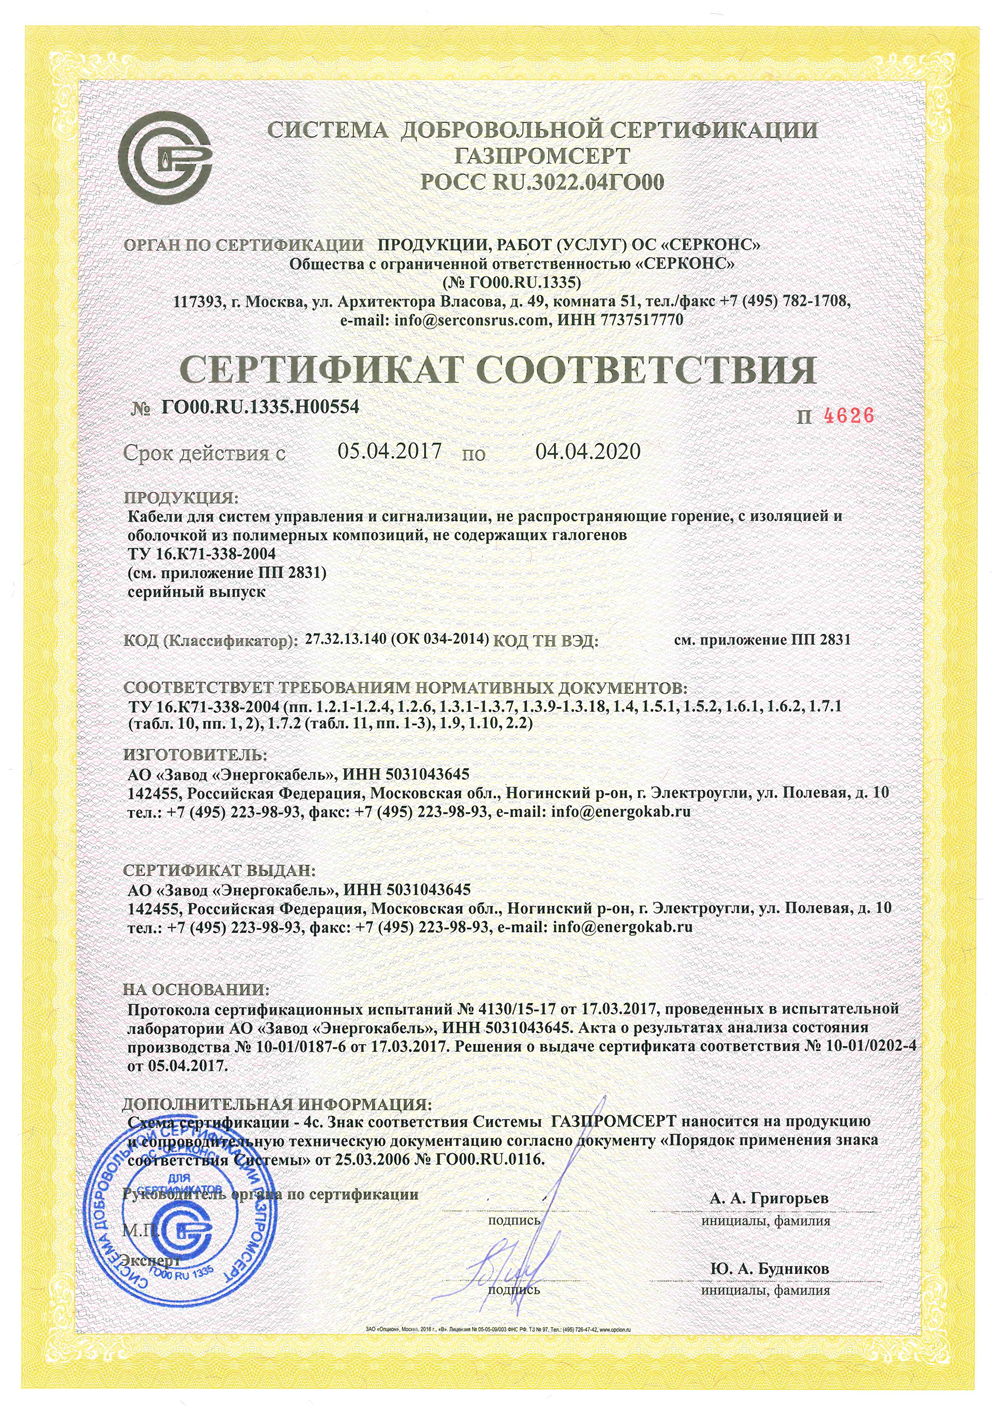 Certificate of Conformity No. ГО00.RU.1335.Н00554. Cables for control and signaling systems flame retardant, with insulation and sheath of halogen free polymer composition.